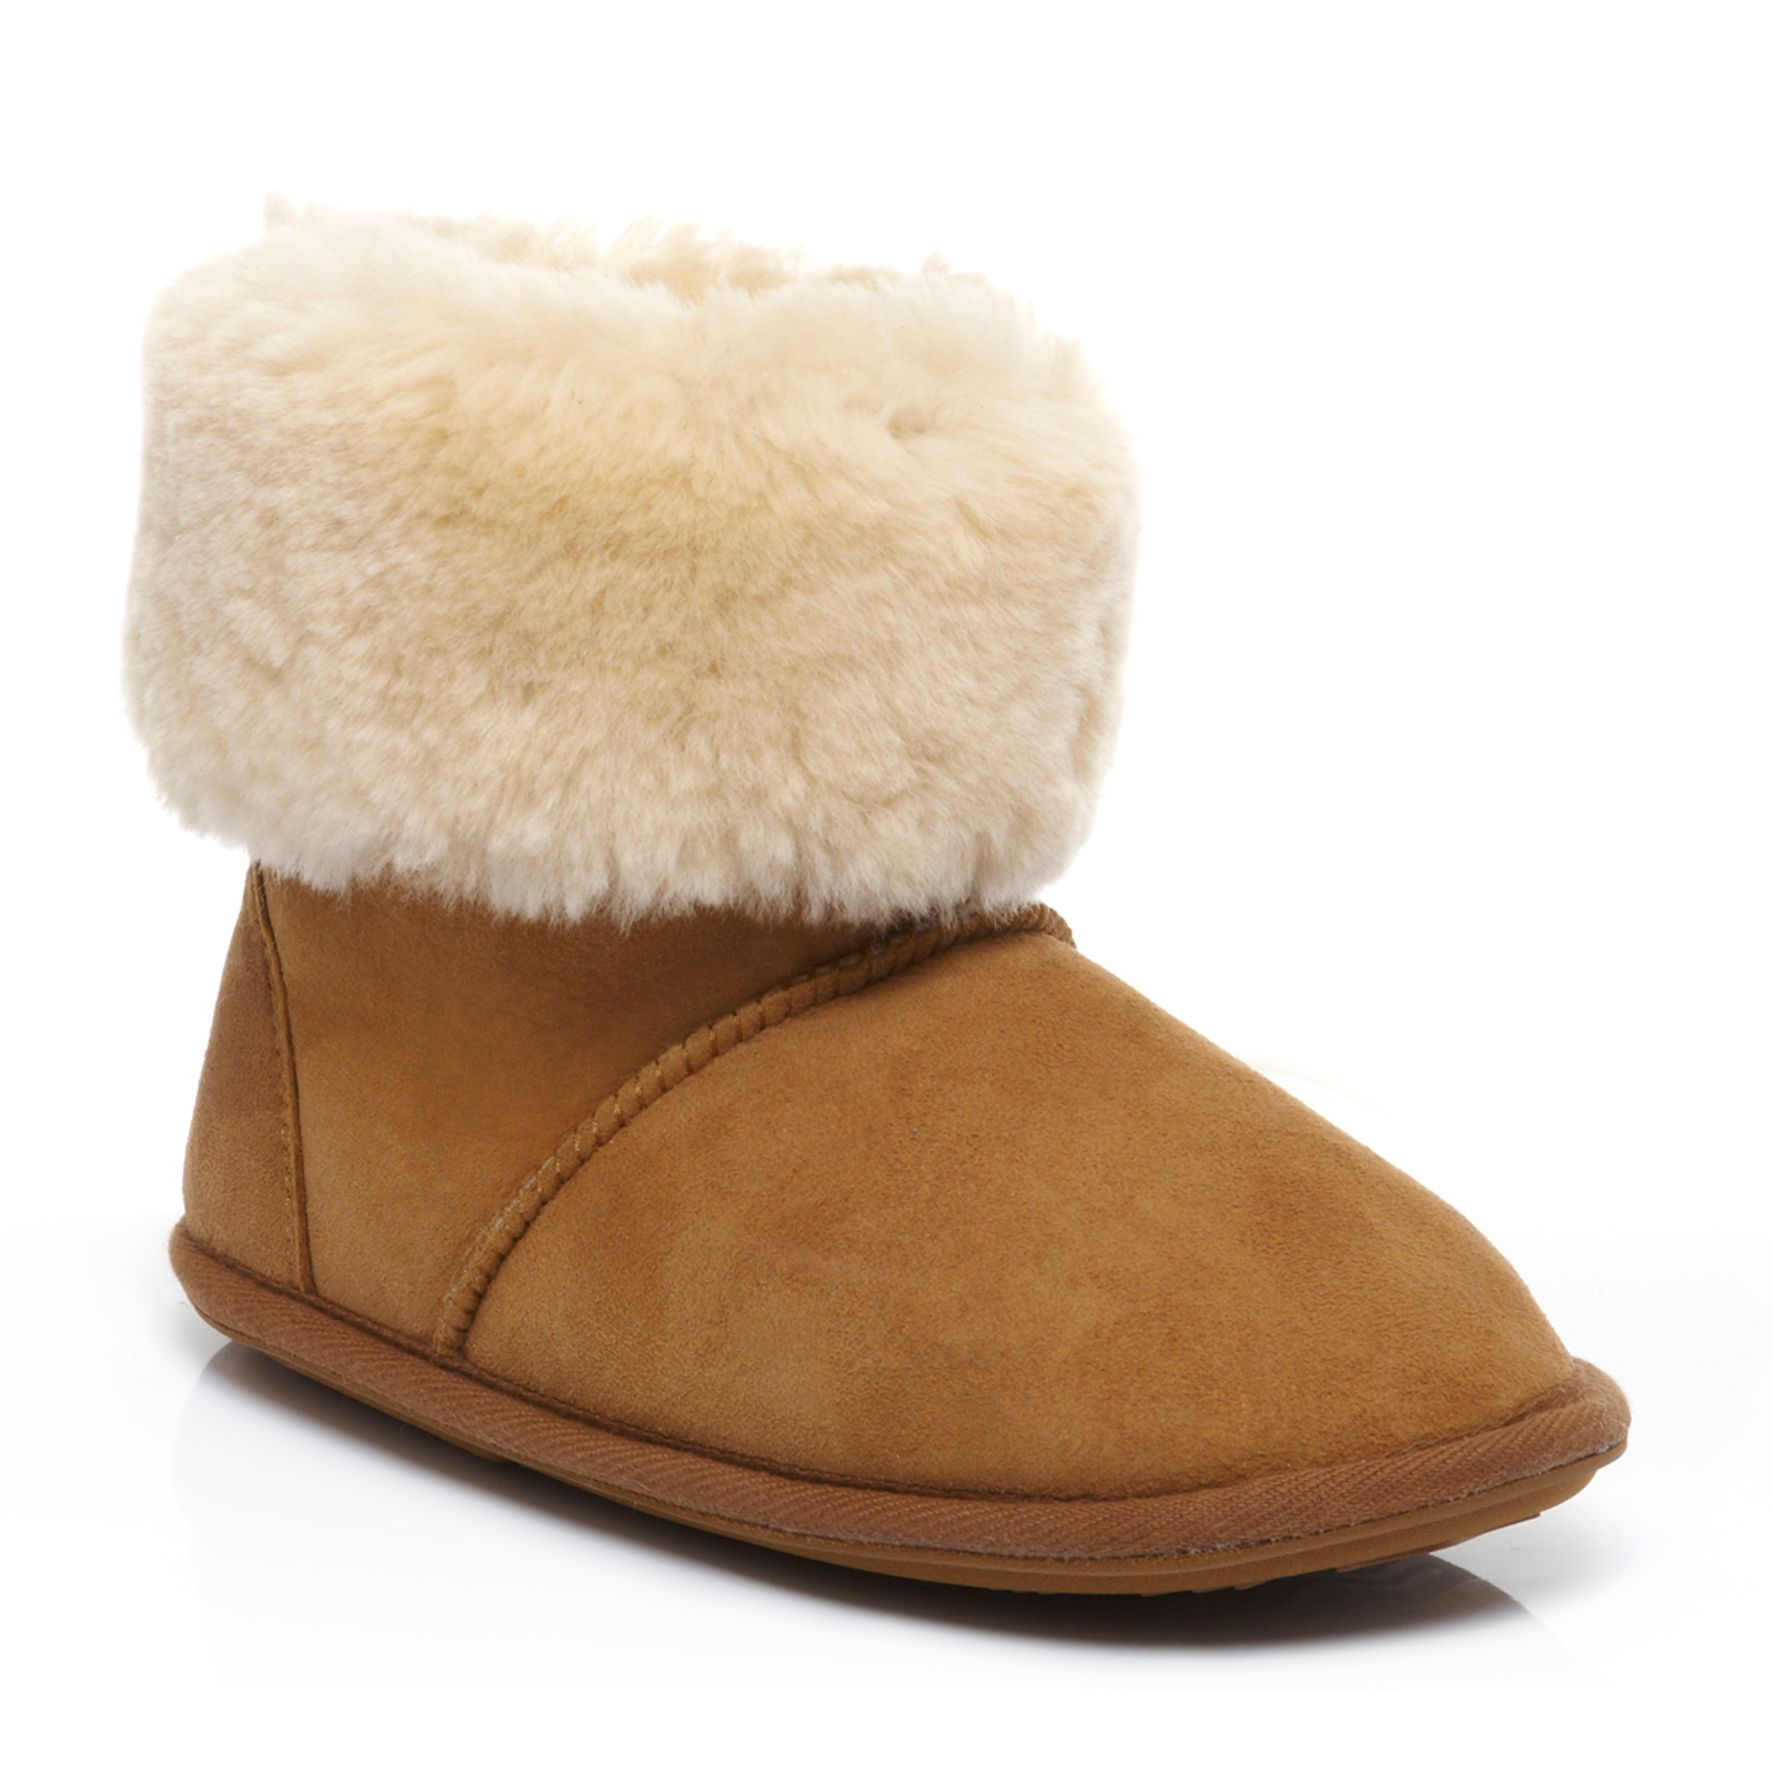 Albery sheepskin boot with textile sole